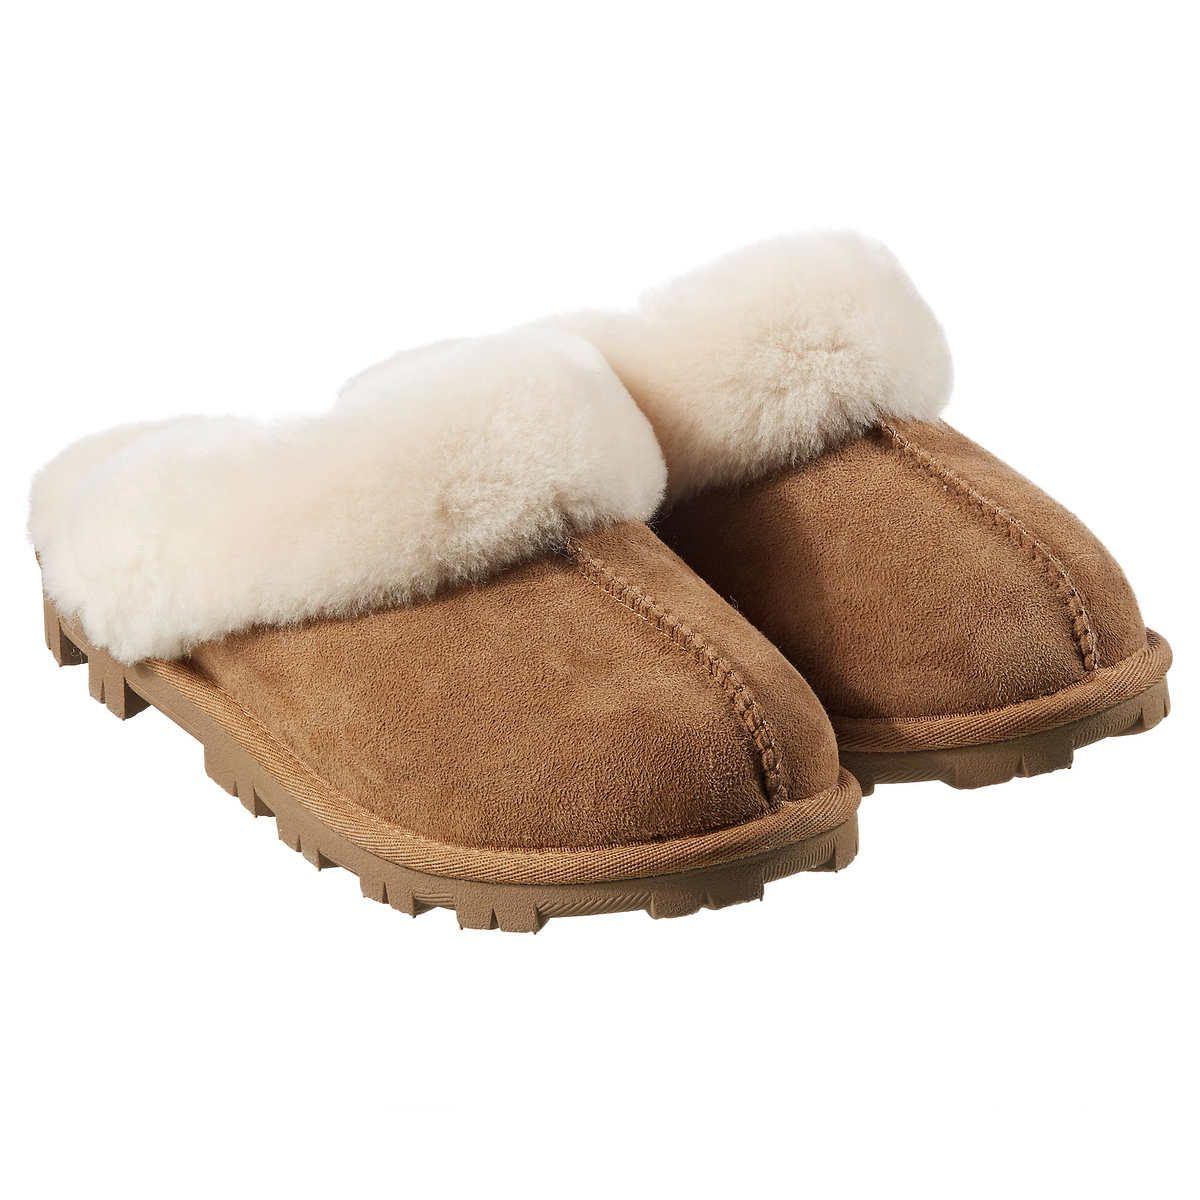 Codtco Com: Why You Should Only Buy Slippers From Costco